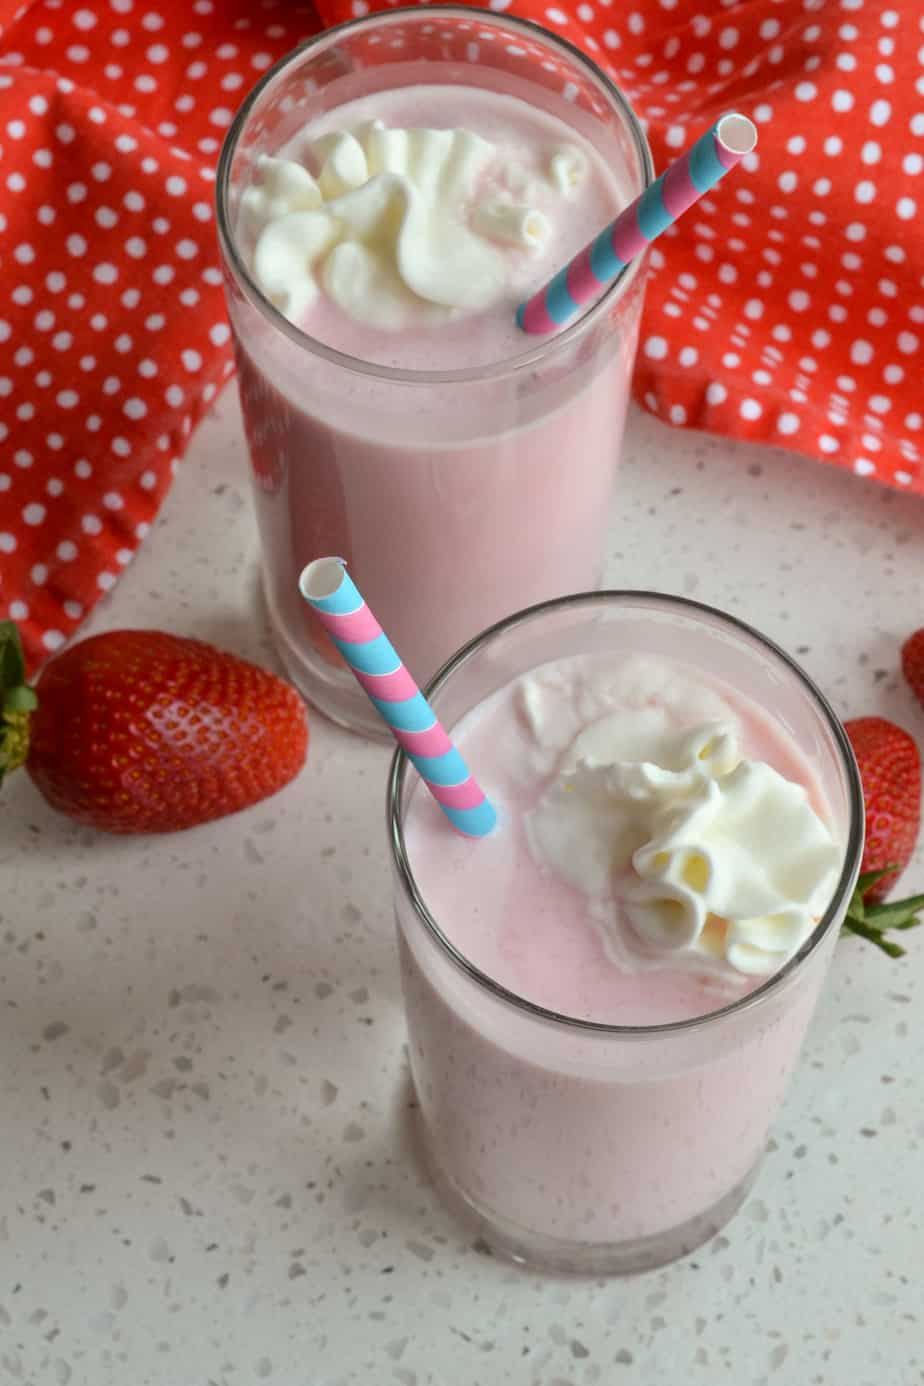 Ice cold milk is combined with homemade strawberry syrup for a real taste treat.